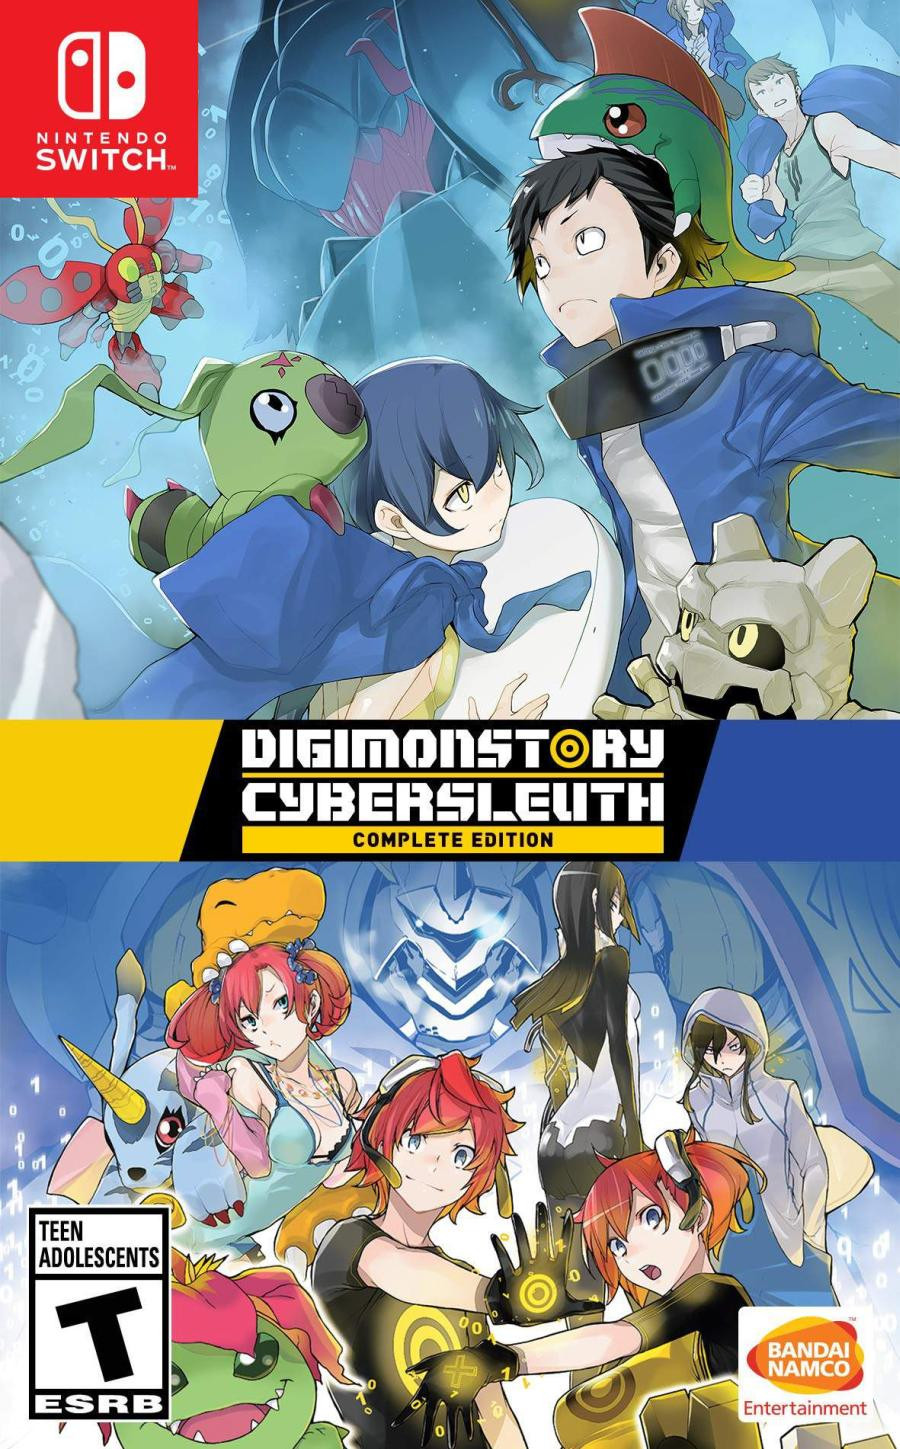 SWITCH Digimon Story Cybersluth Complete Edition